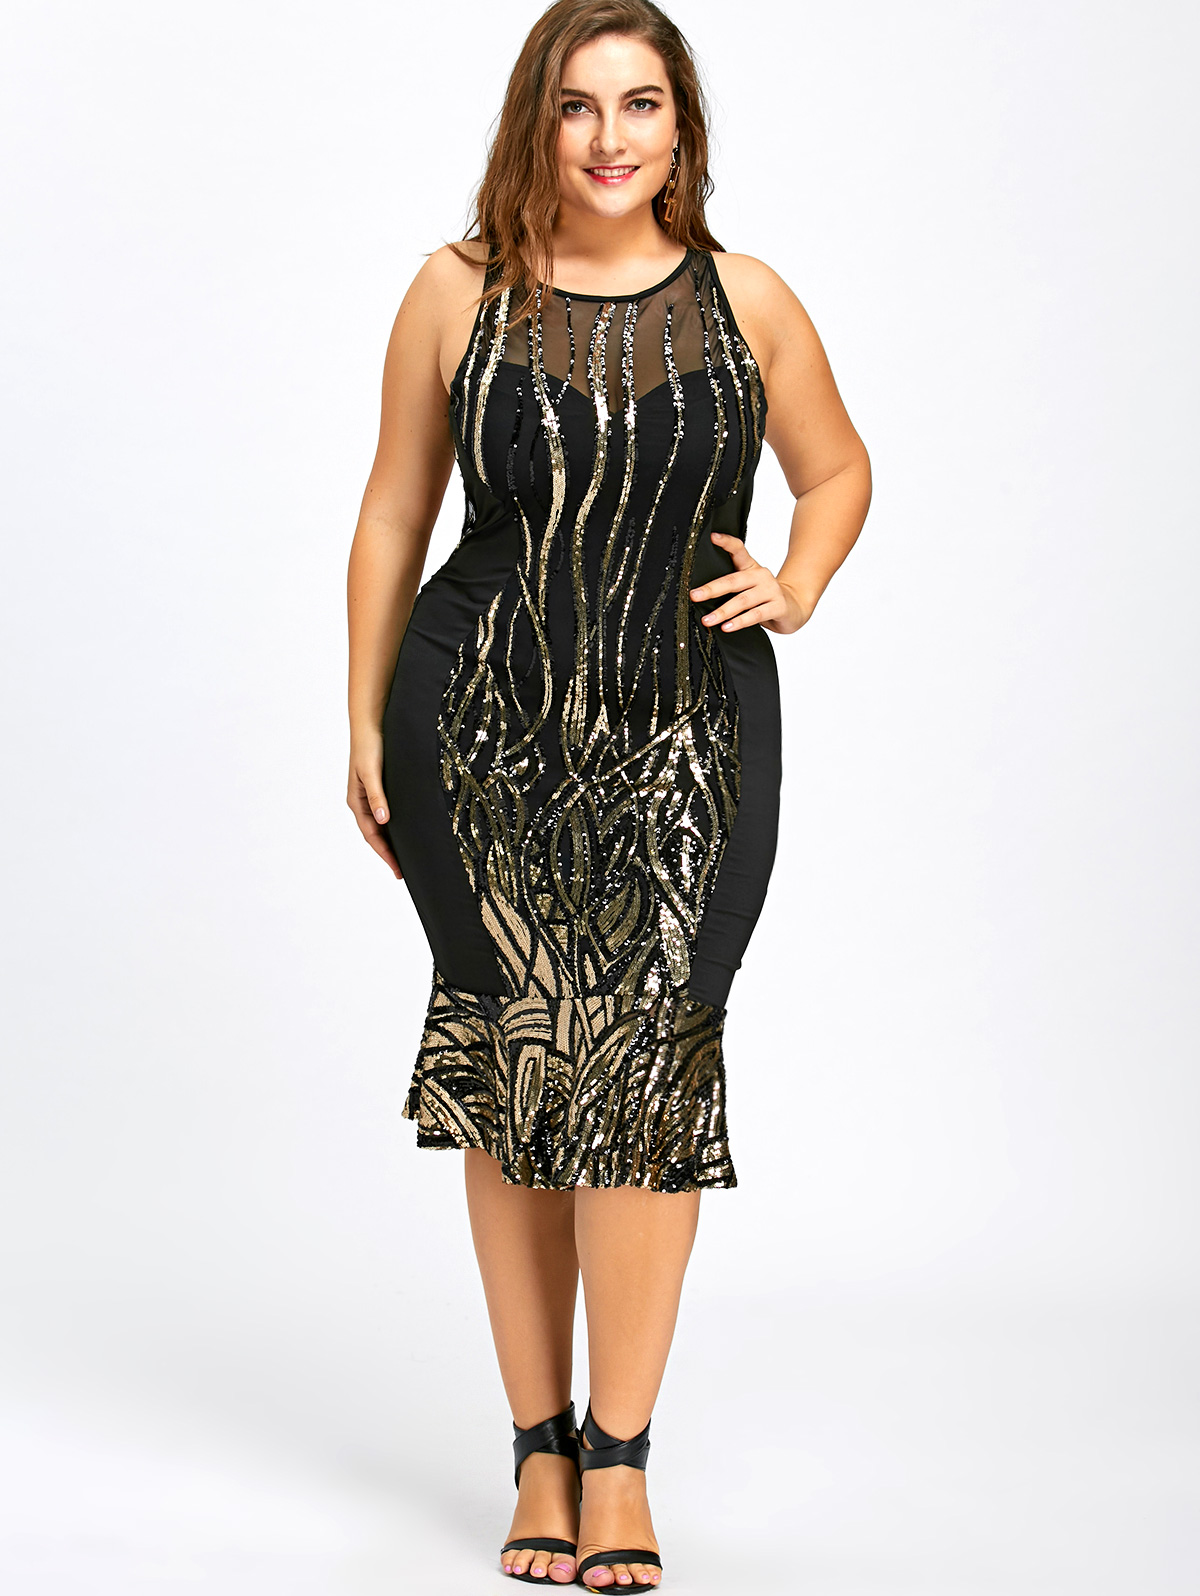 Gamiss Women Dress Sequin Plus Size 5XL 4XL Mermaid Bodycon Dress  Sleeveless Sexy Open Back Party Female Dress Vestidos-in Dresses from  Women s Clothing on ... fb224d79642a